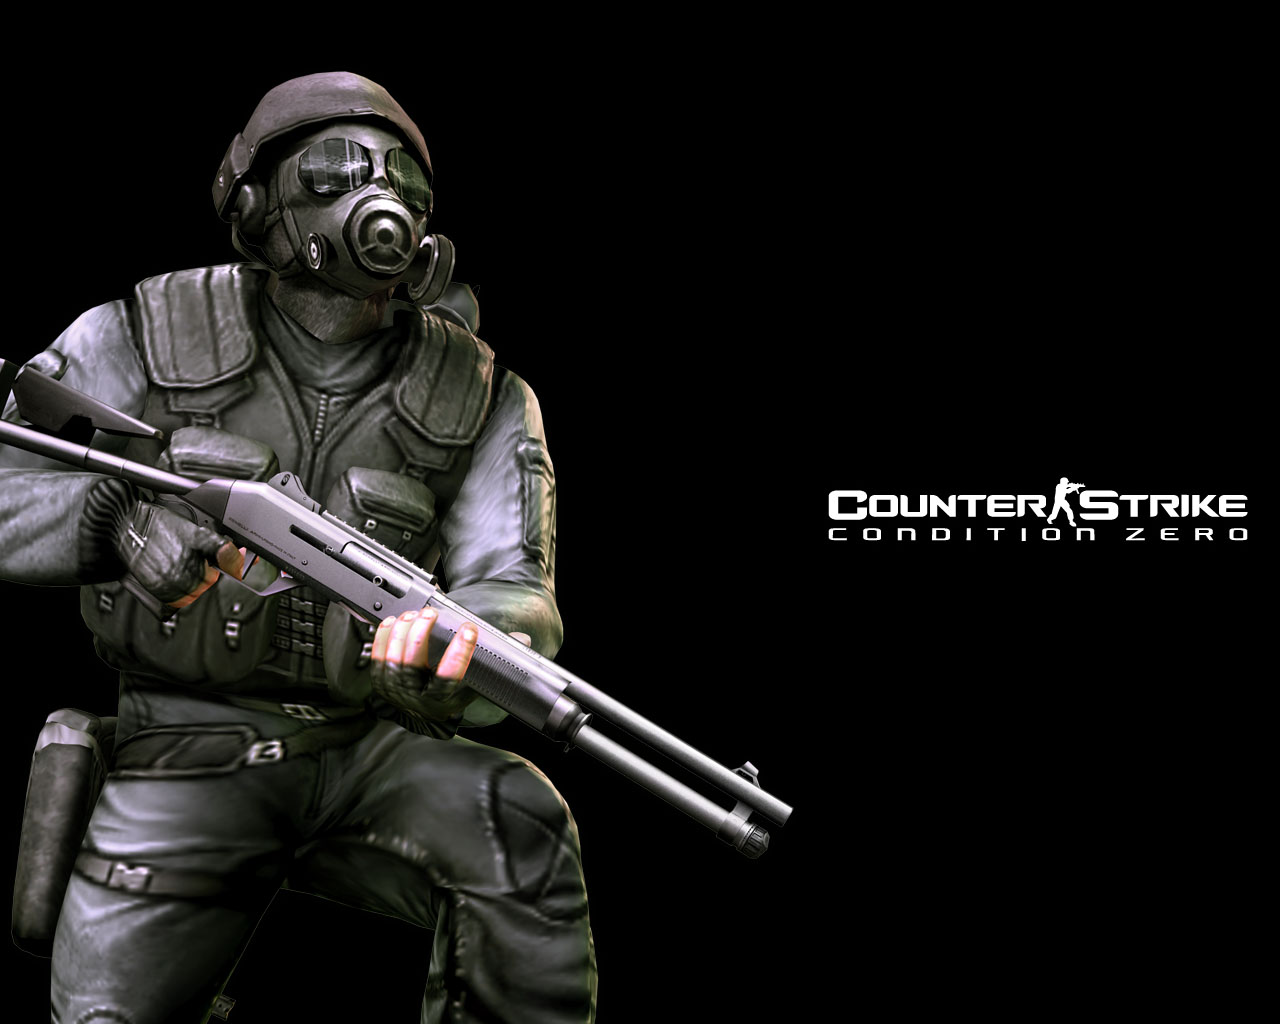 Арт к игре Counter-Strike: Condition Zero